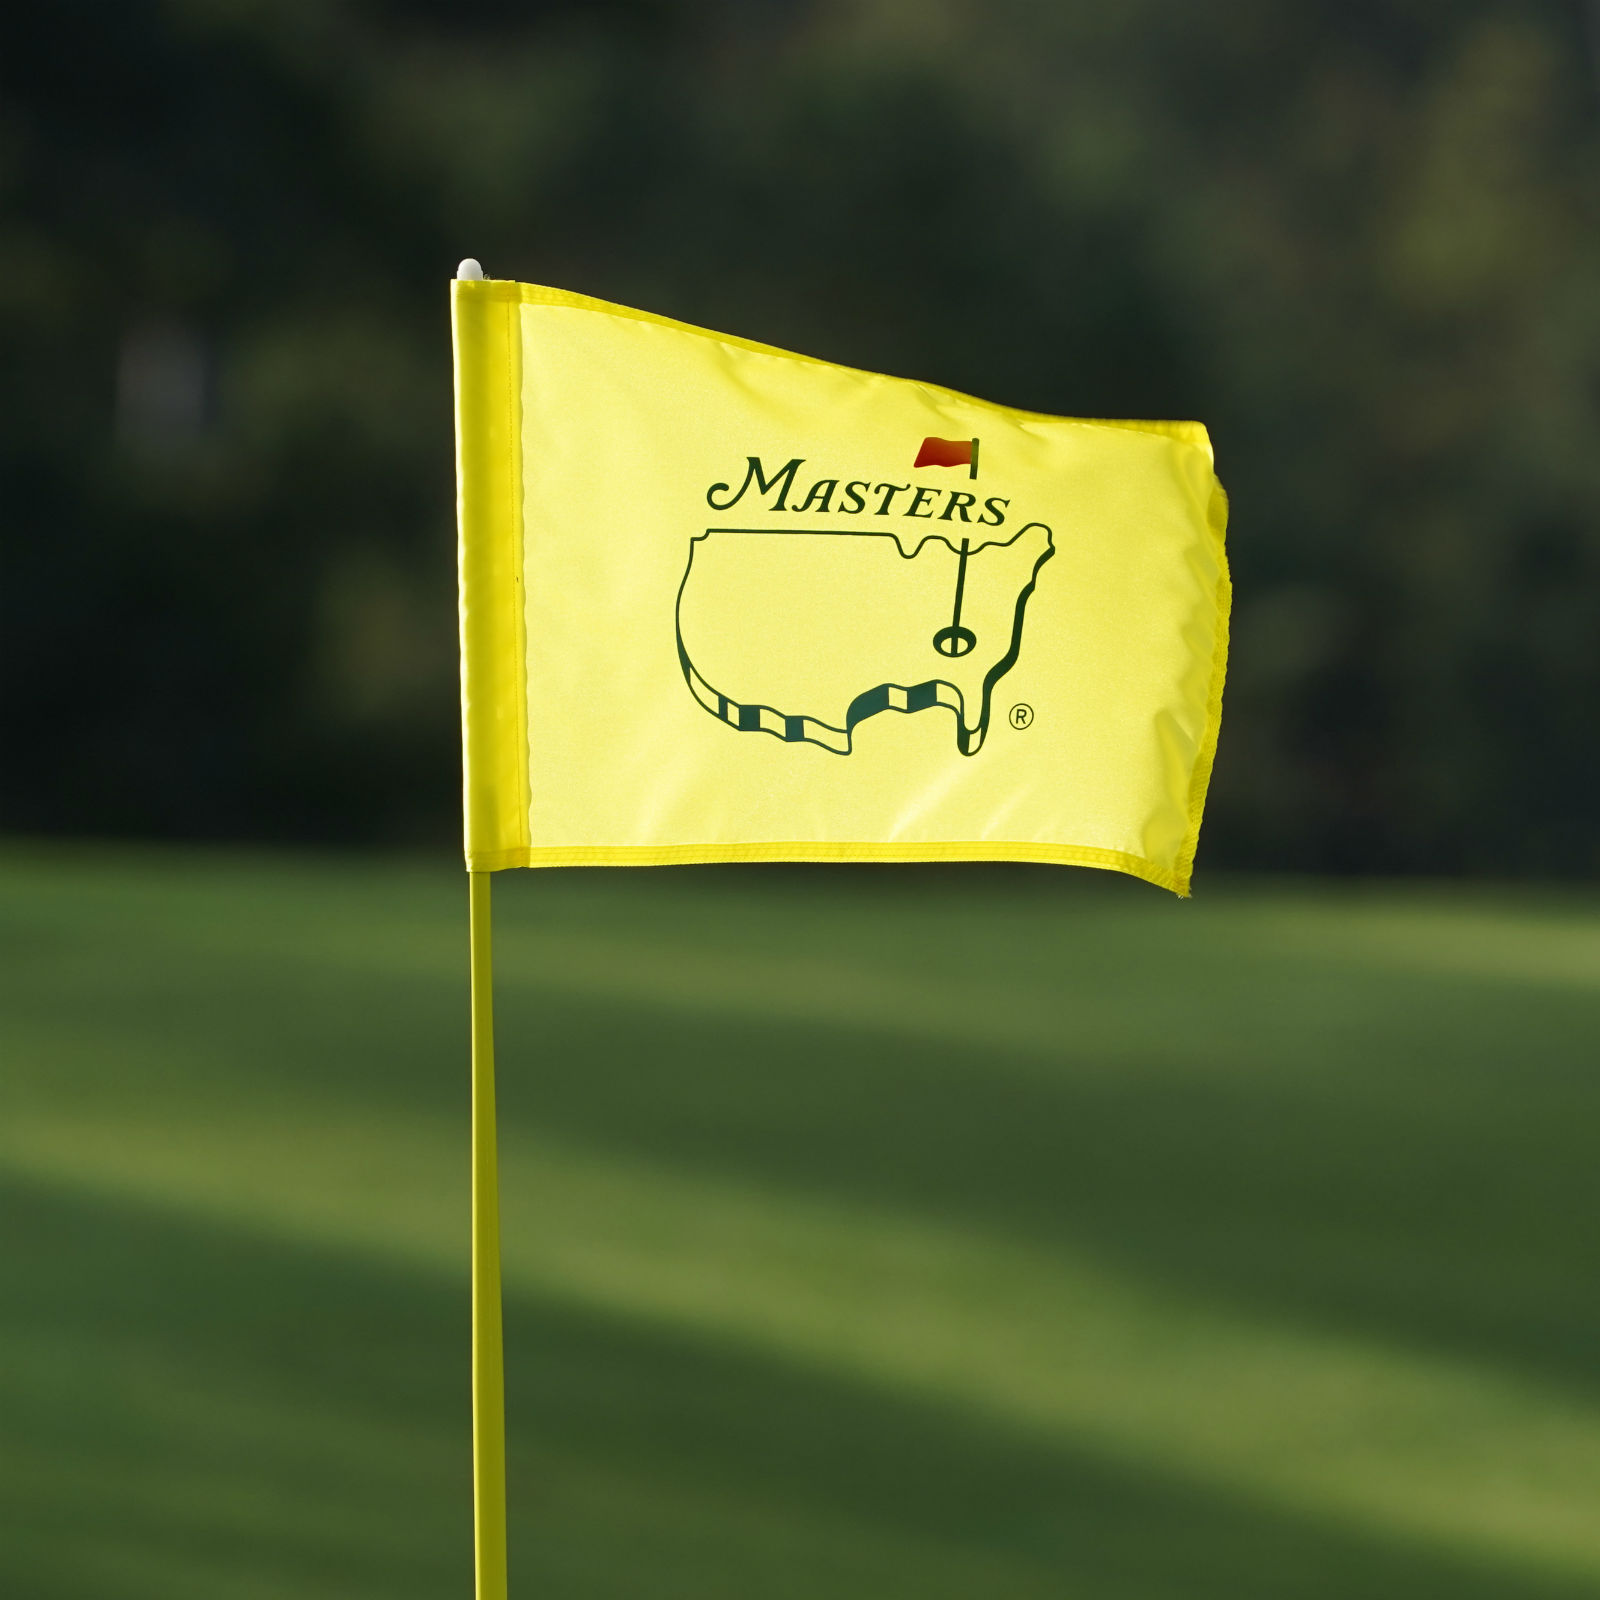 Us masters betting trends side cryptocurrency arbitrage trading botsystem